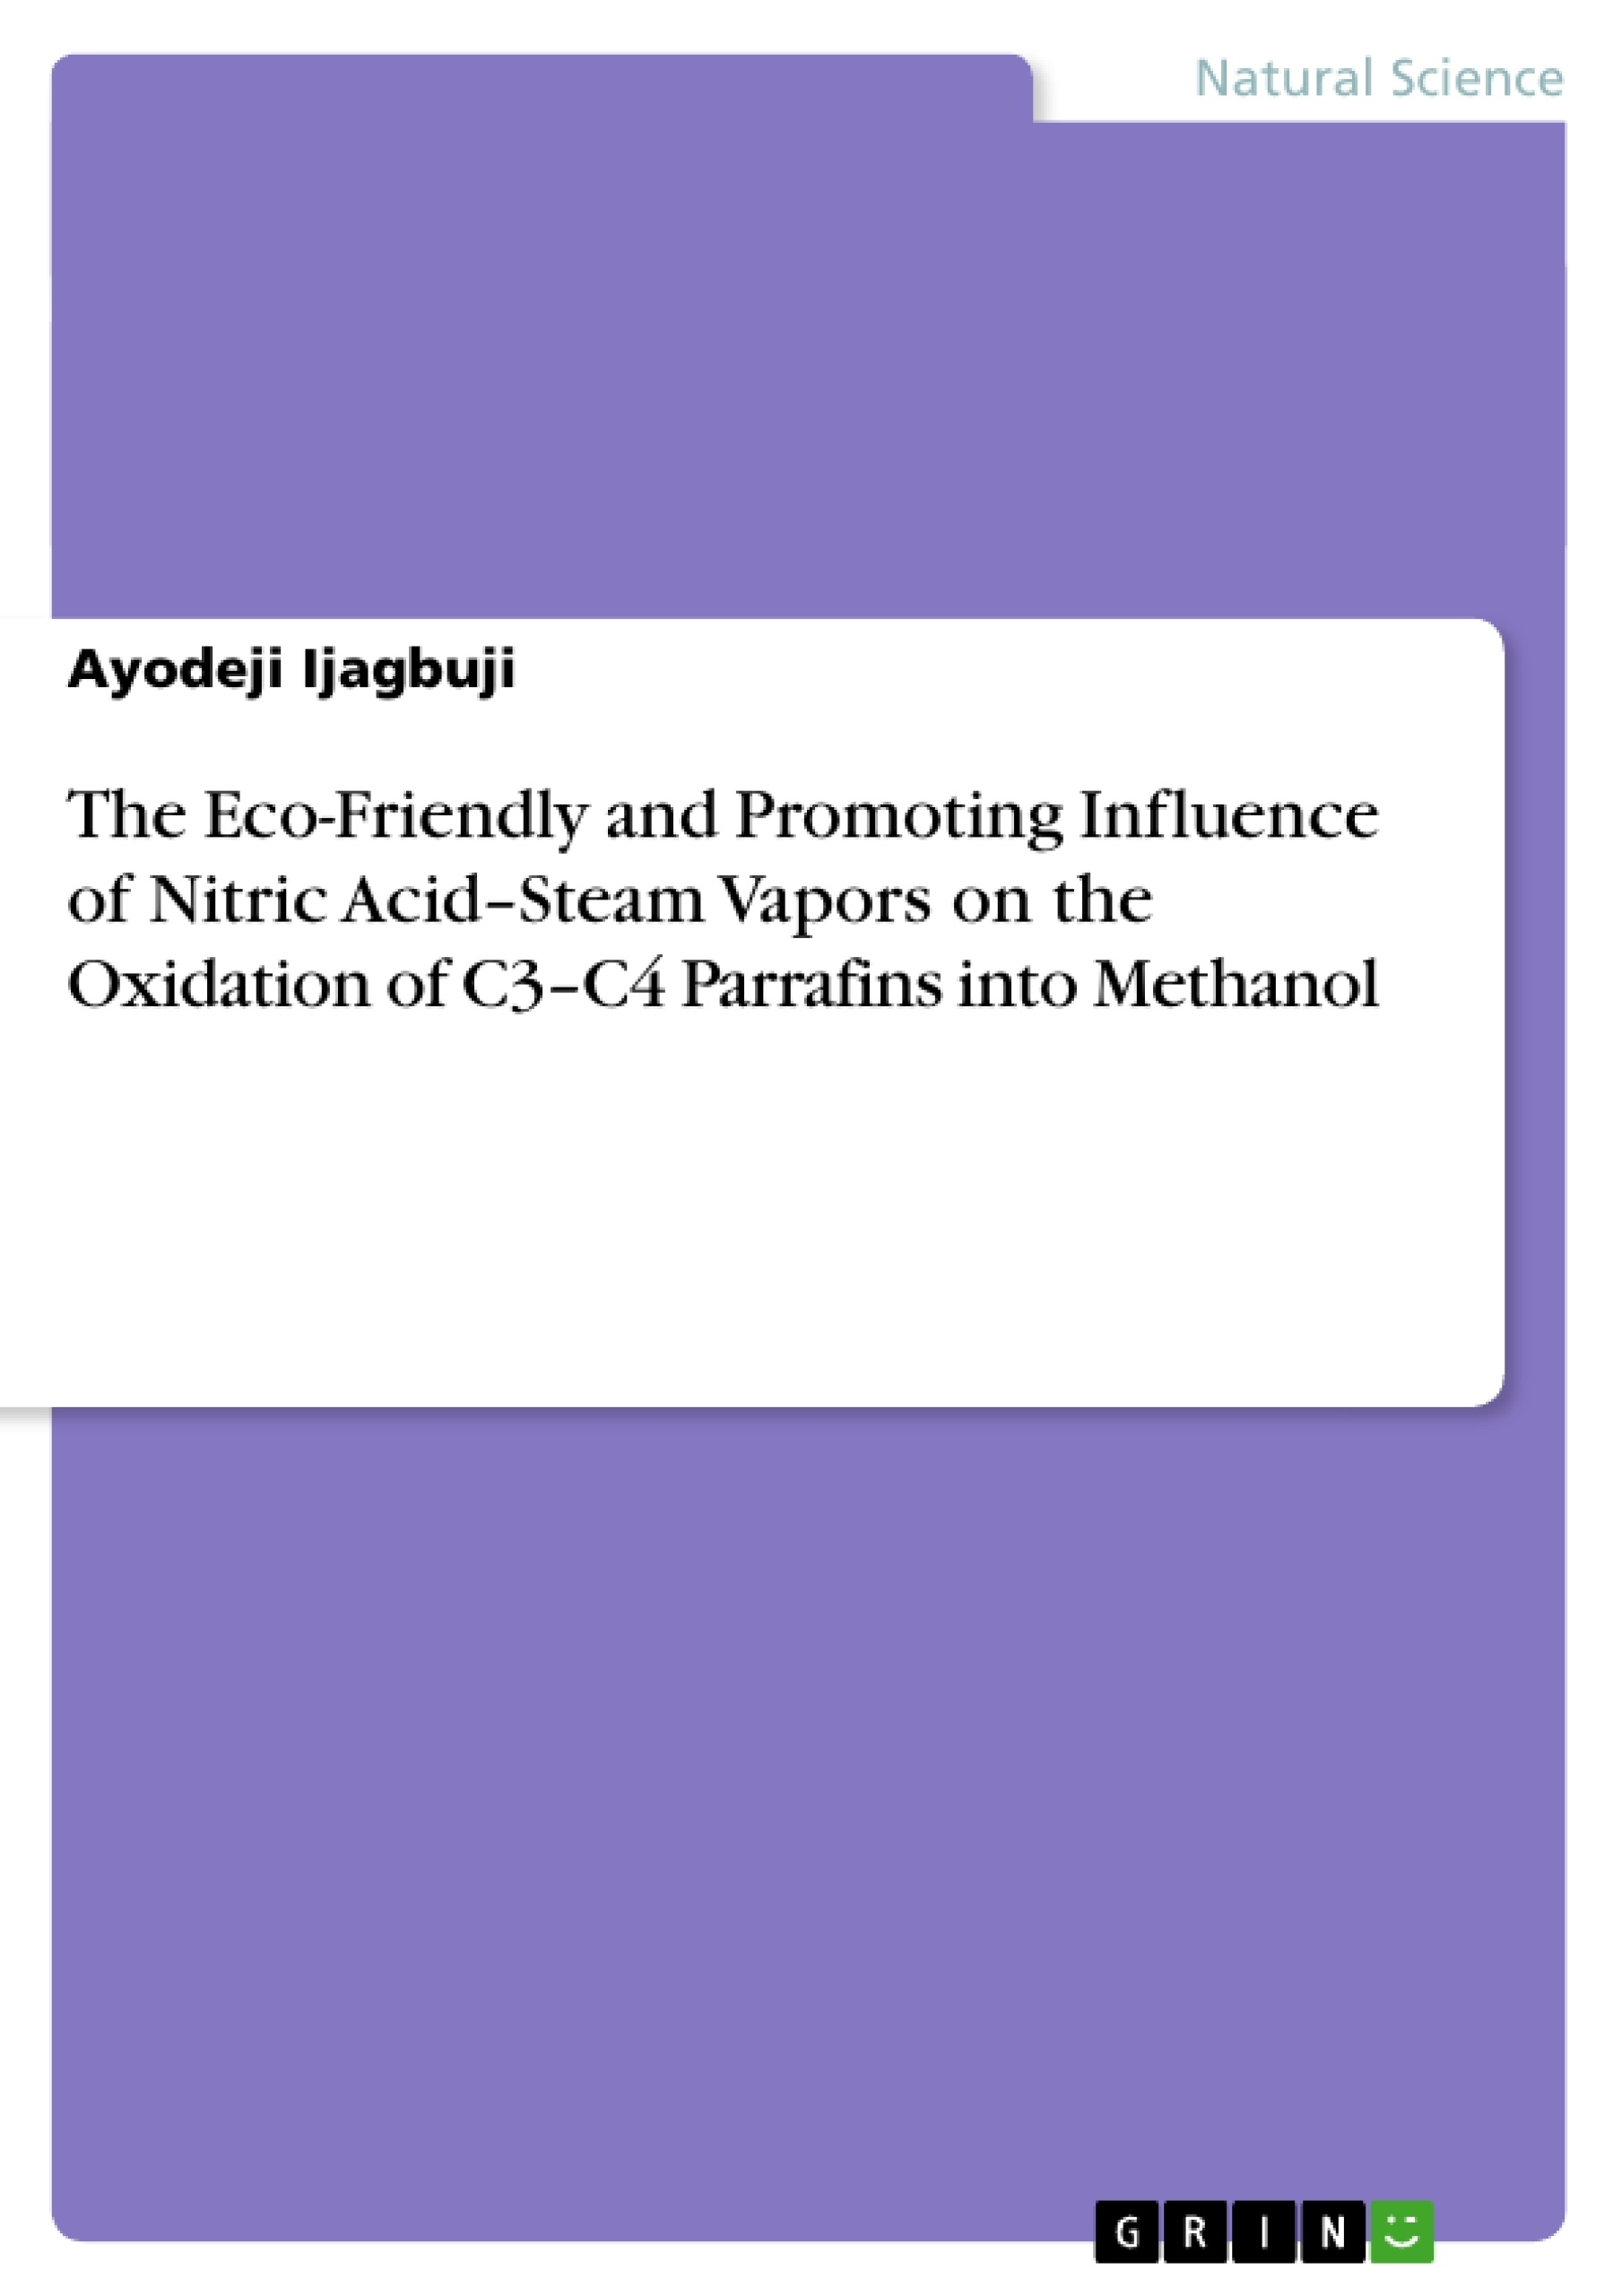 Title: The Eco-Friendly and Promoting Influence of Nitric Acid–Steam Vapors on the Oxidation of C3–C4 Parrafins into Methanol